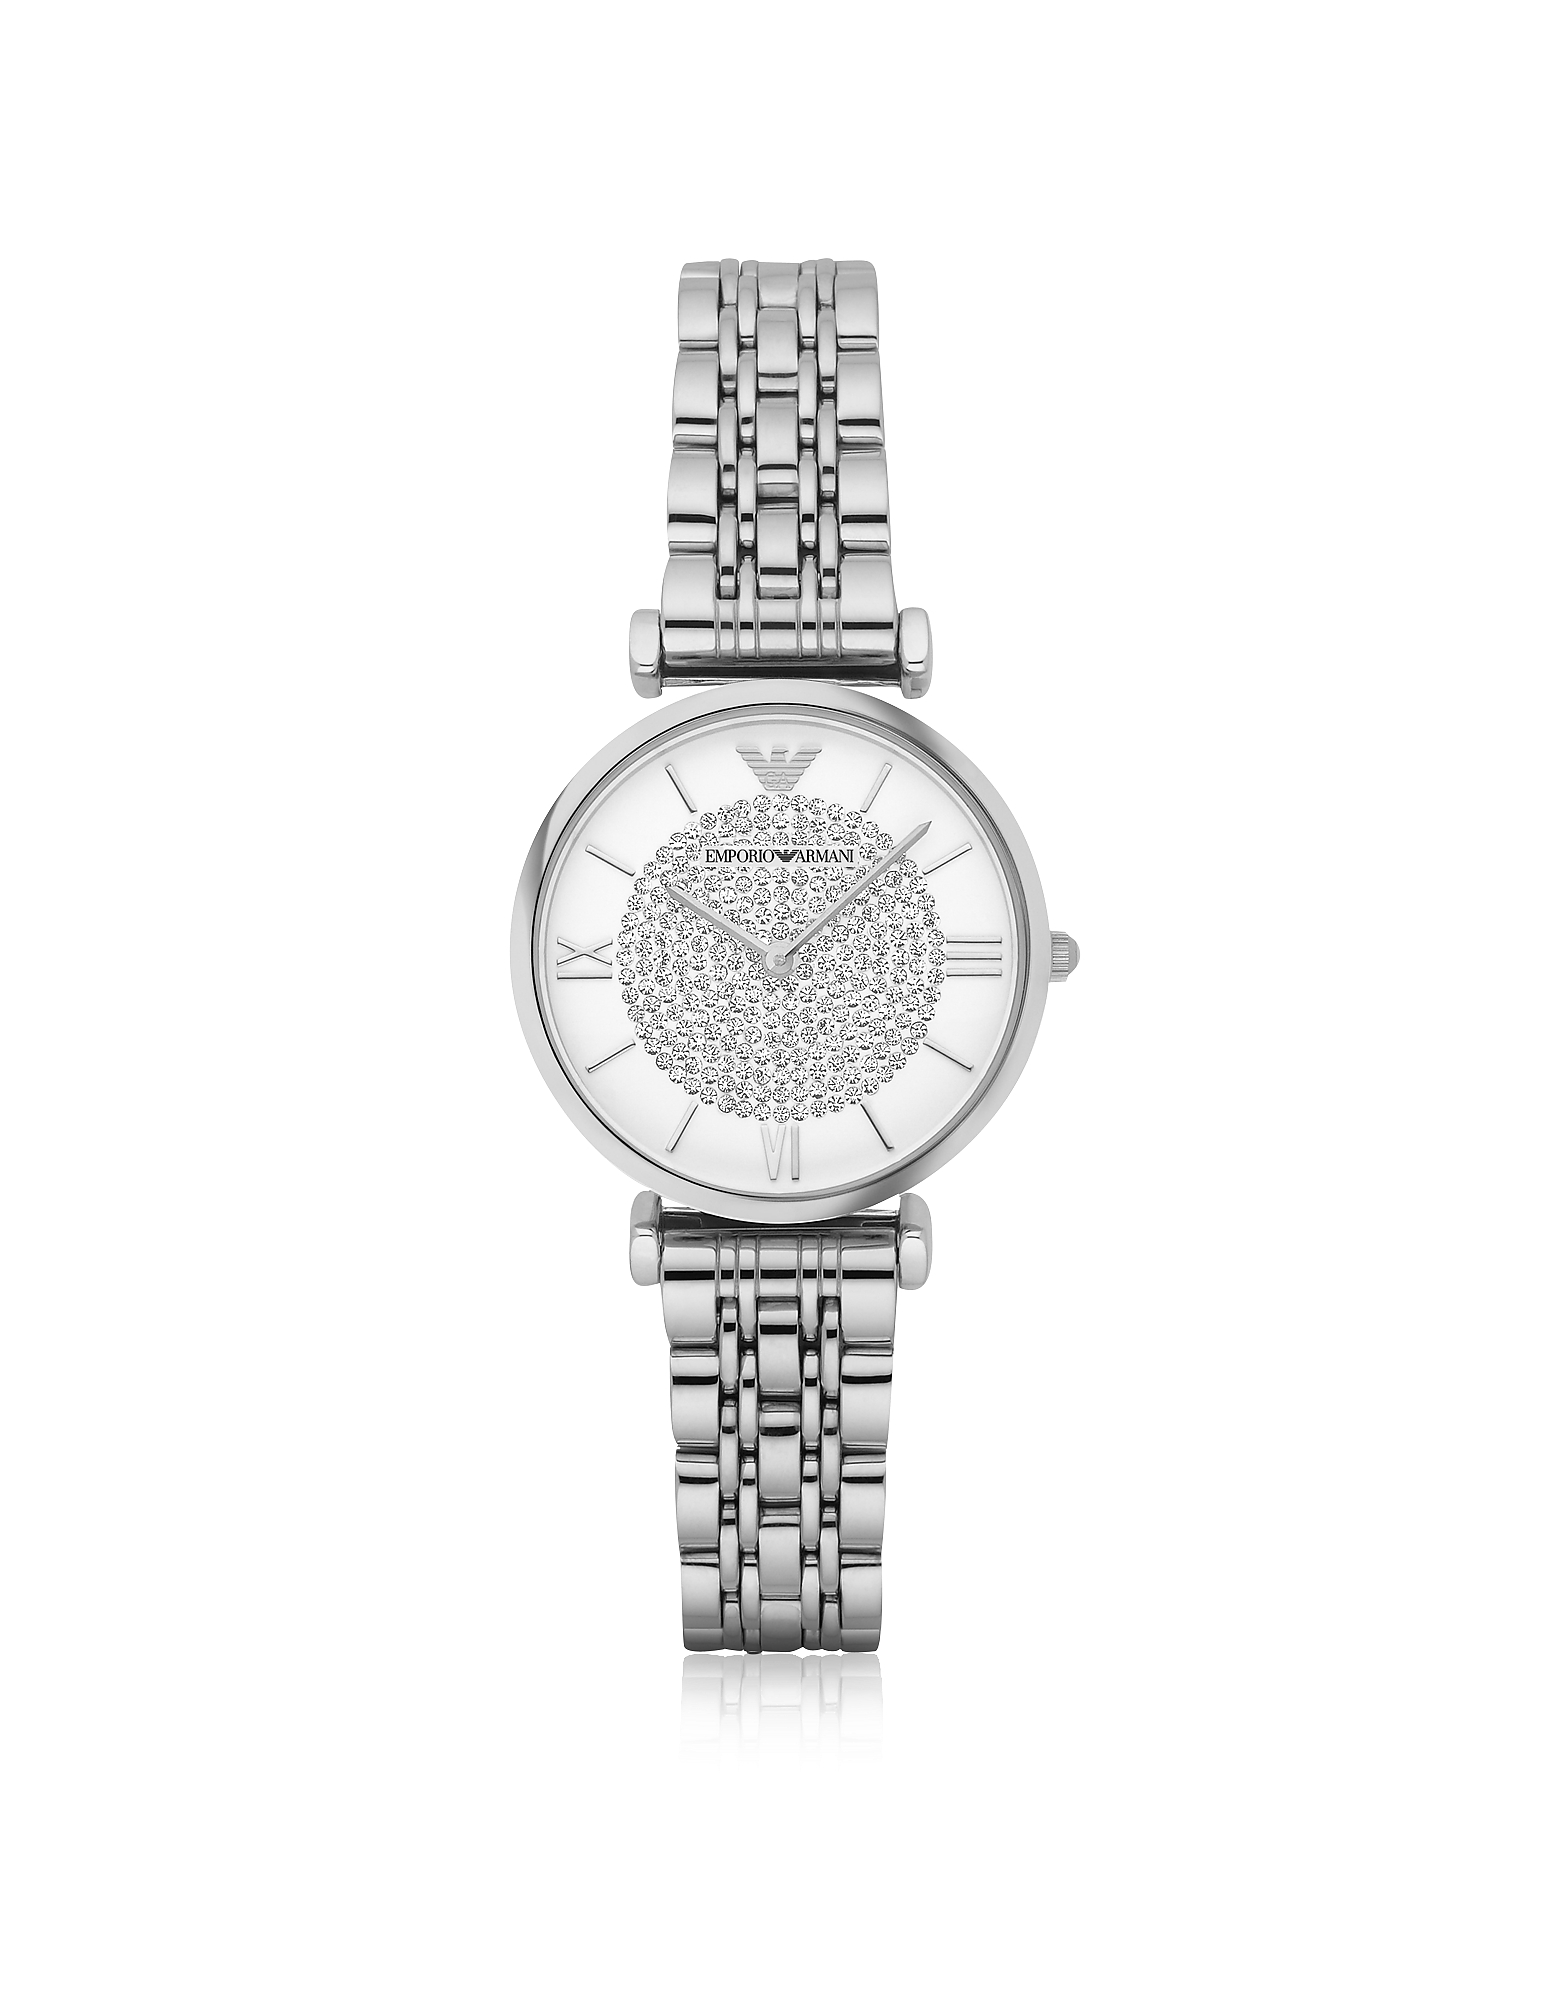 Emporio Armani Women's Watches, T-Bar Silvertone Stainless Steel Women's Watch w/Crystals Dial